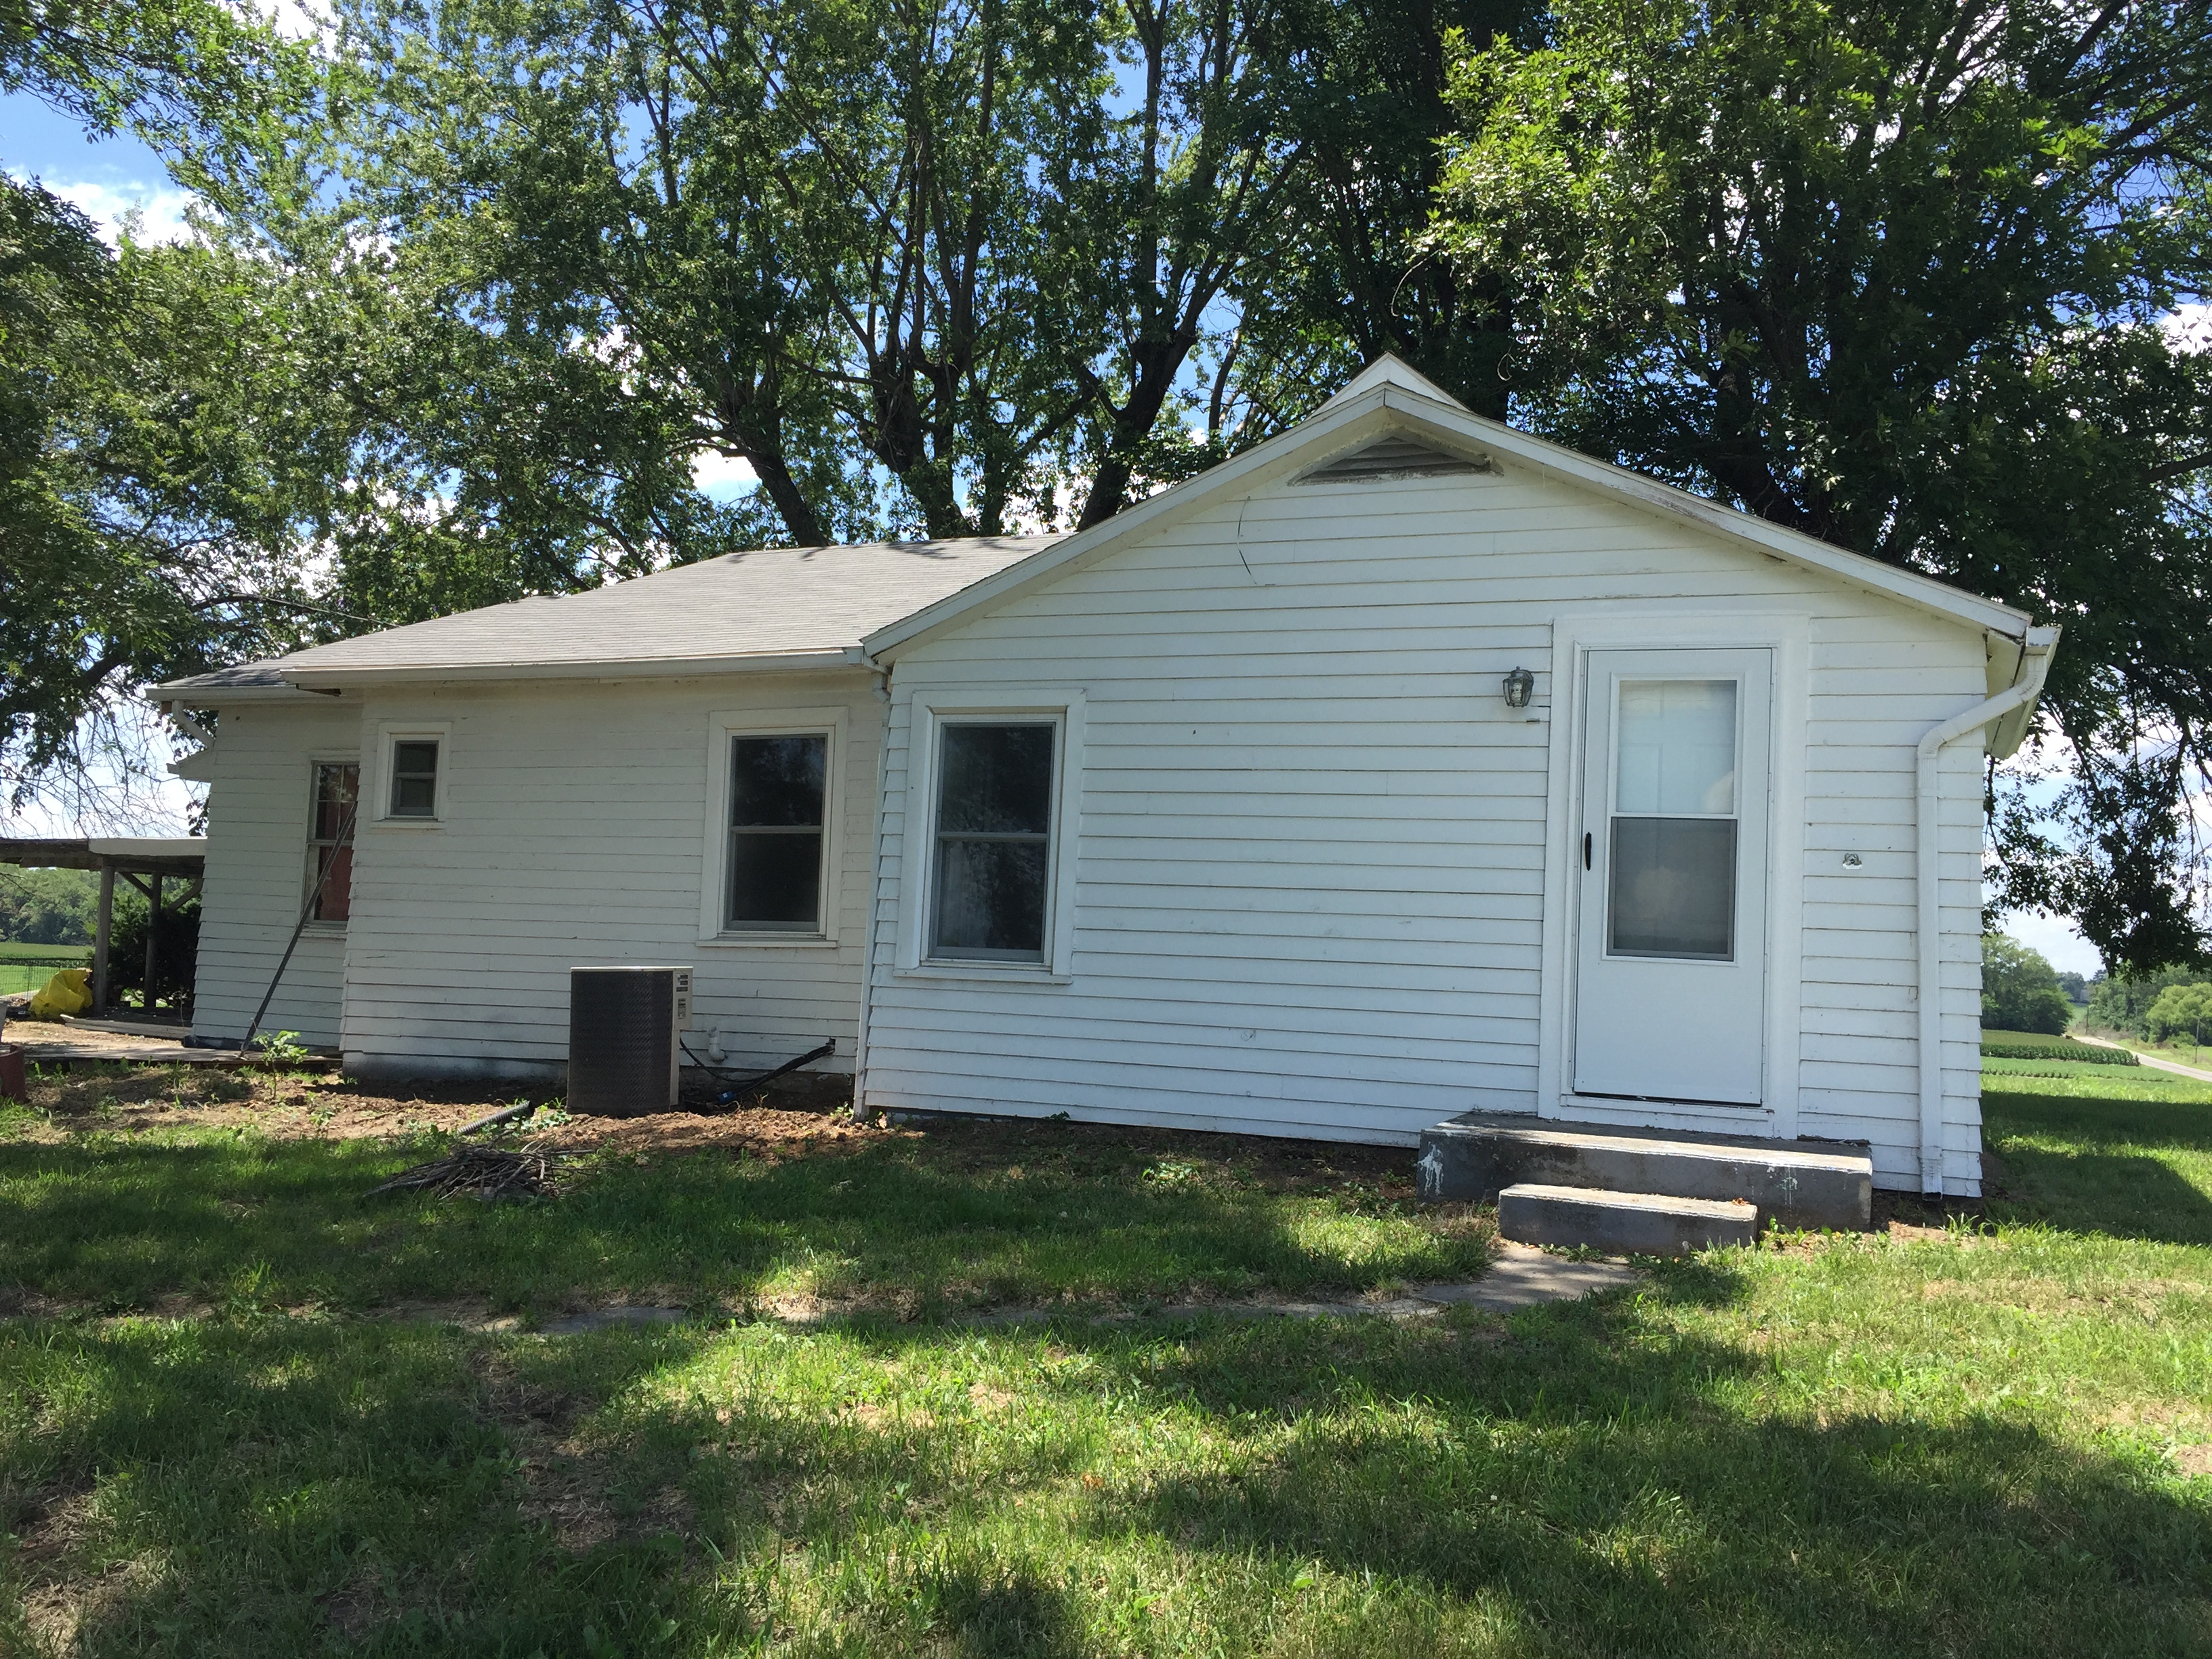 330 Nw 400th Rd, Warrensburg, MO 64093 | RealEstate.com